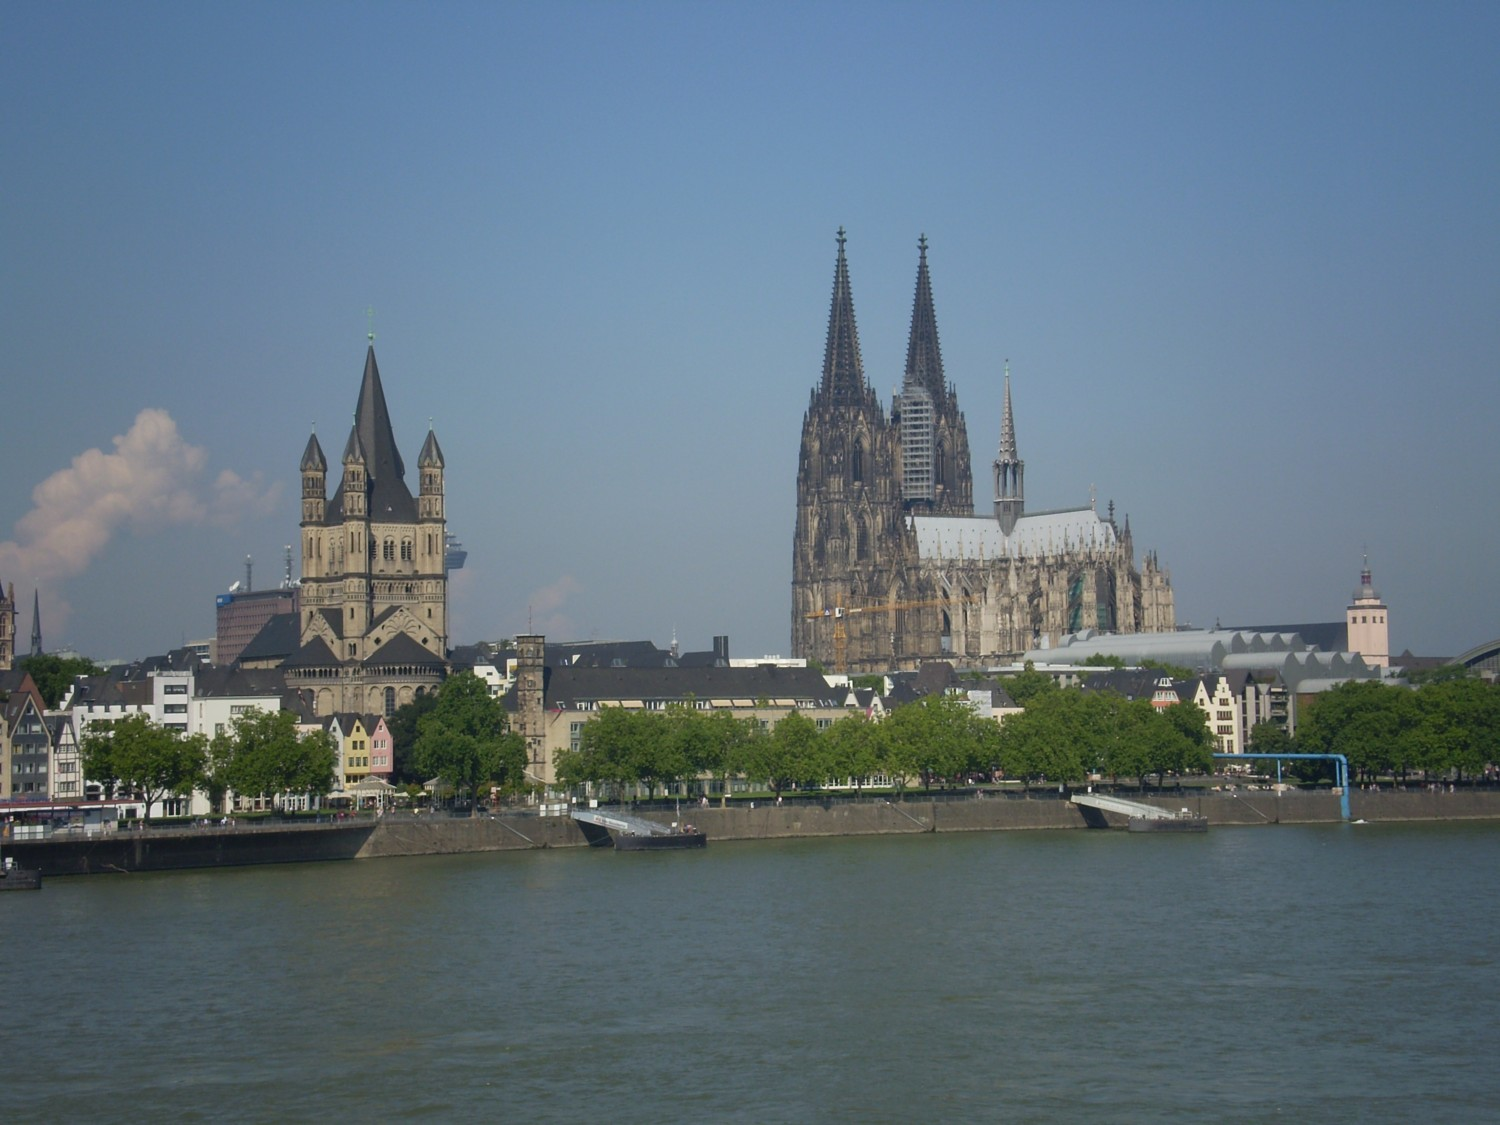 Cologne-medieval-city-with-a-magnificent-cathedral-www.anirishmanontour.com-2.jpg